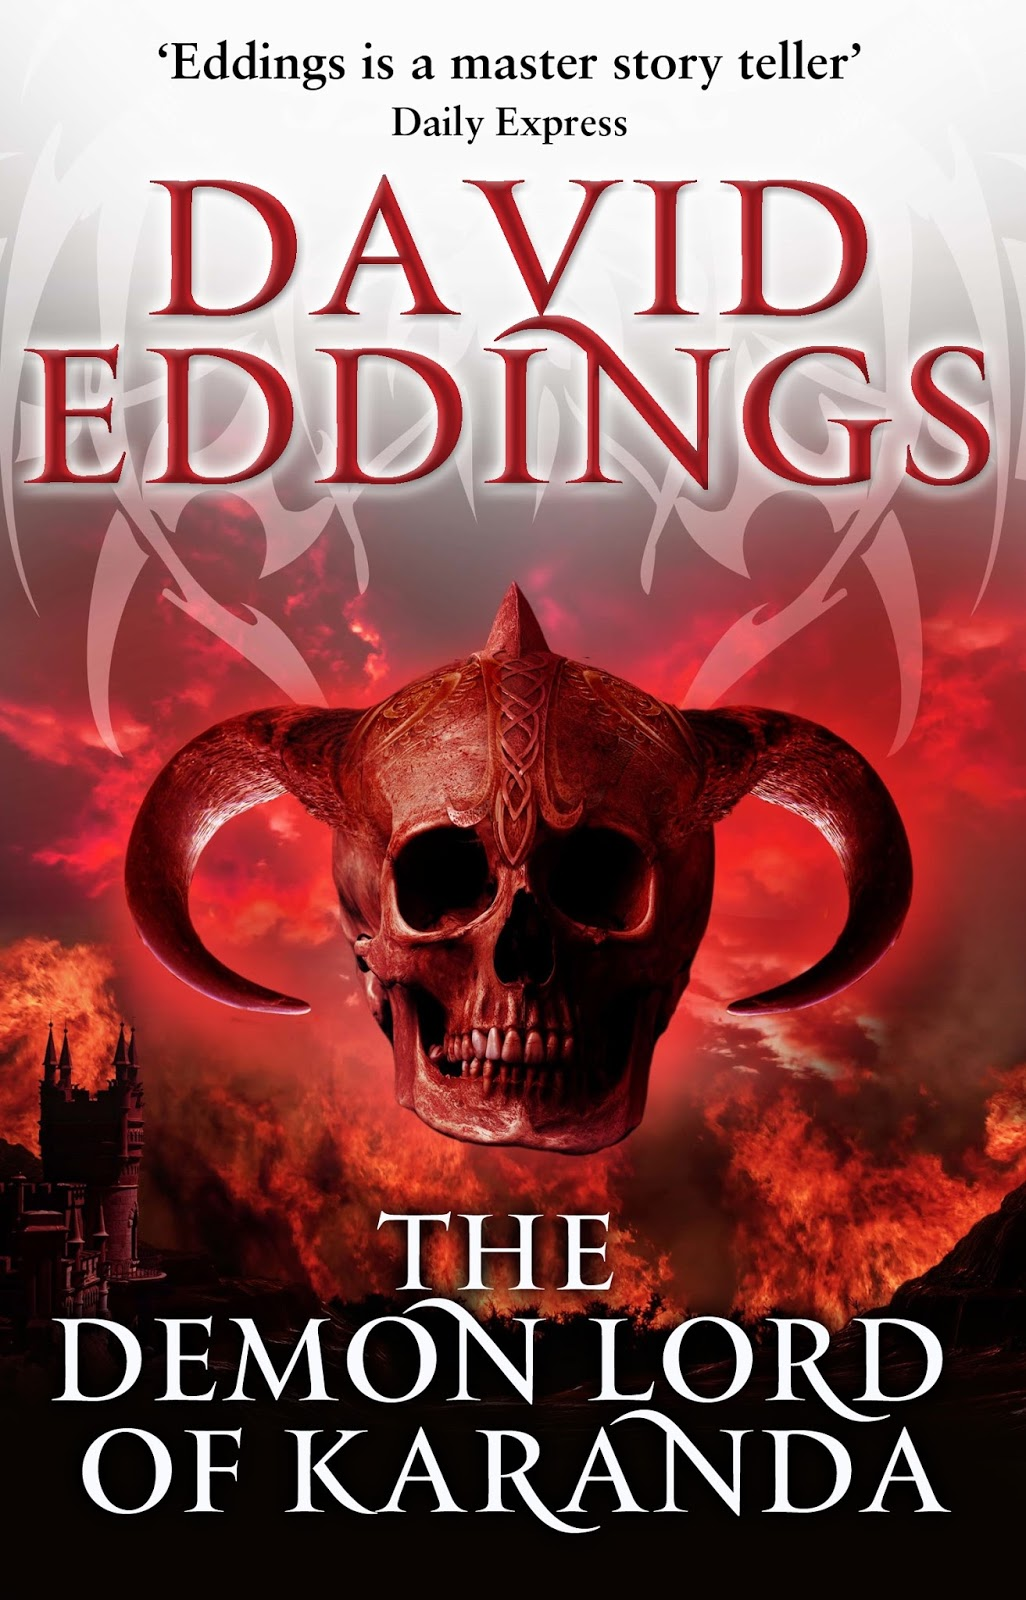 Demon Lord of Karanda by David Eddings